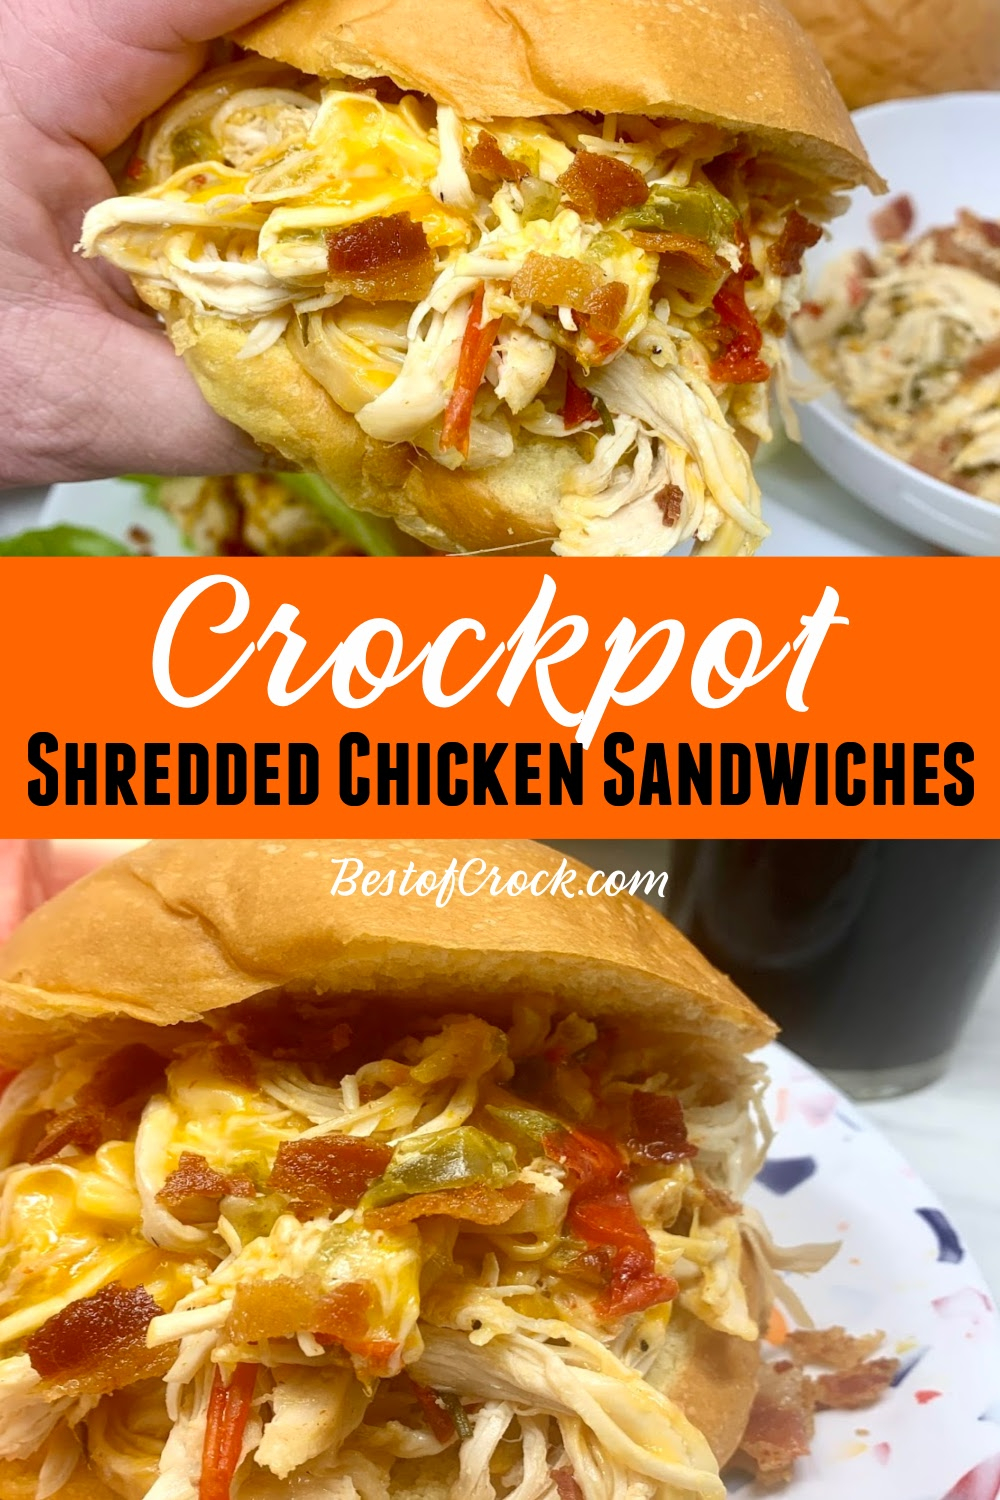 These crockpot shredded chicken sandwiches are easy and perfect for a quick lunch or dinner. You can also use the chicken as a salad topper making it a healthy crockpot recipe as well. Crockpot Shredded Chicken Recipes Easy | Slow Cooker Chicken Recipes | Dinner Recipes with Chicken | Crockpot Sandwiches with Chicken | Chicken and Bacon Recipe | Crockpot Dinner Recipes with Chicken #chicken #crockpot via @bestofcrock